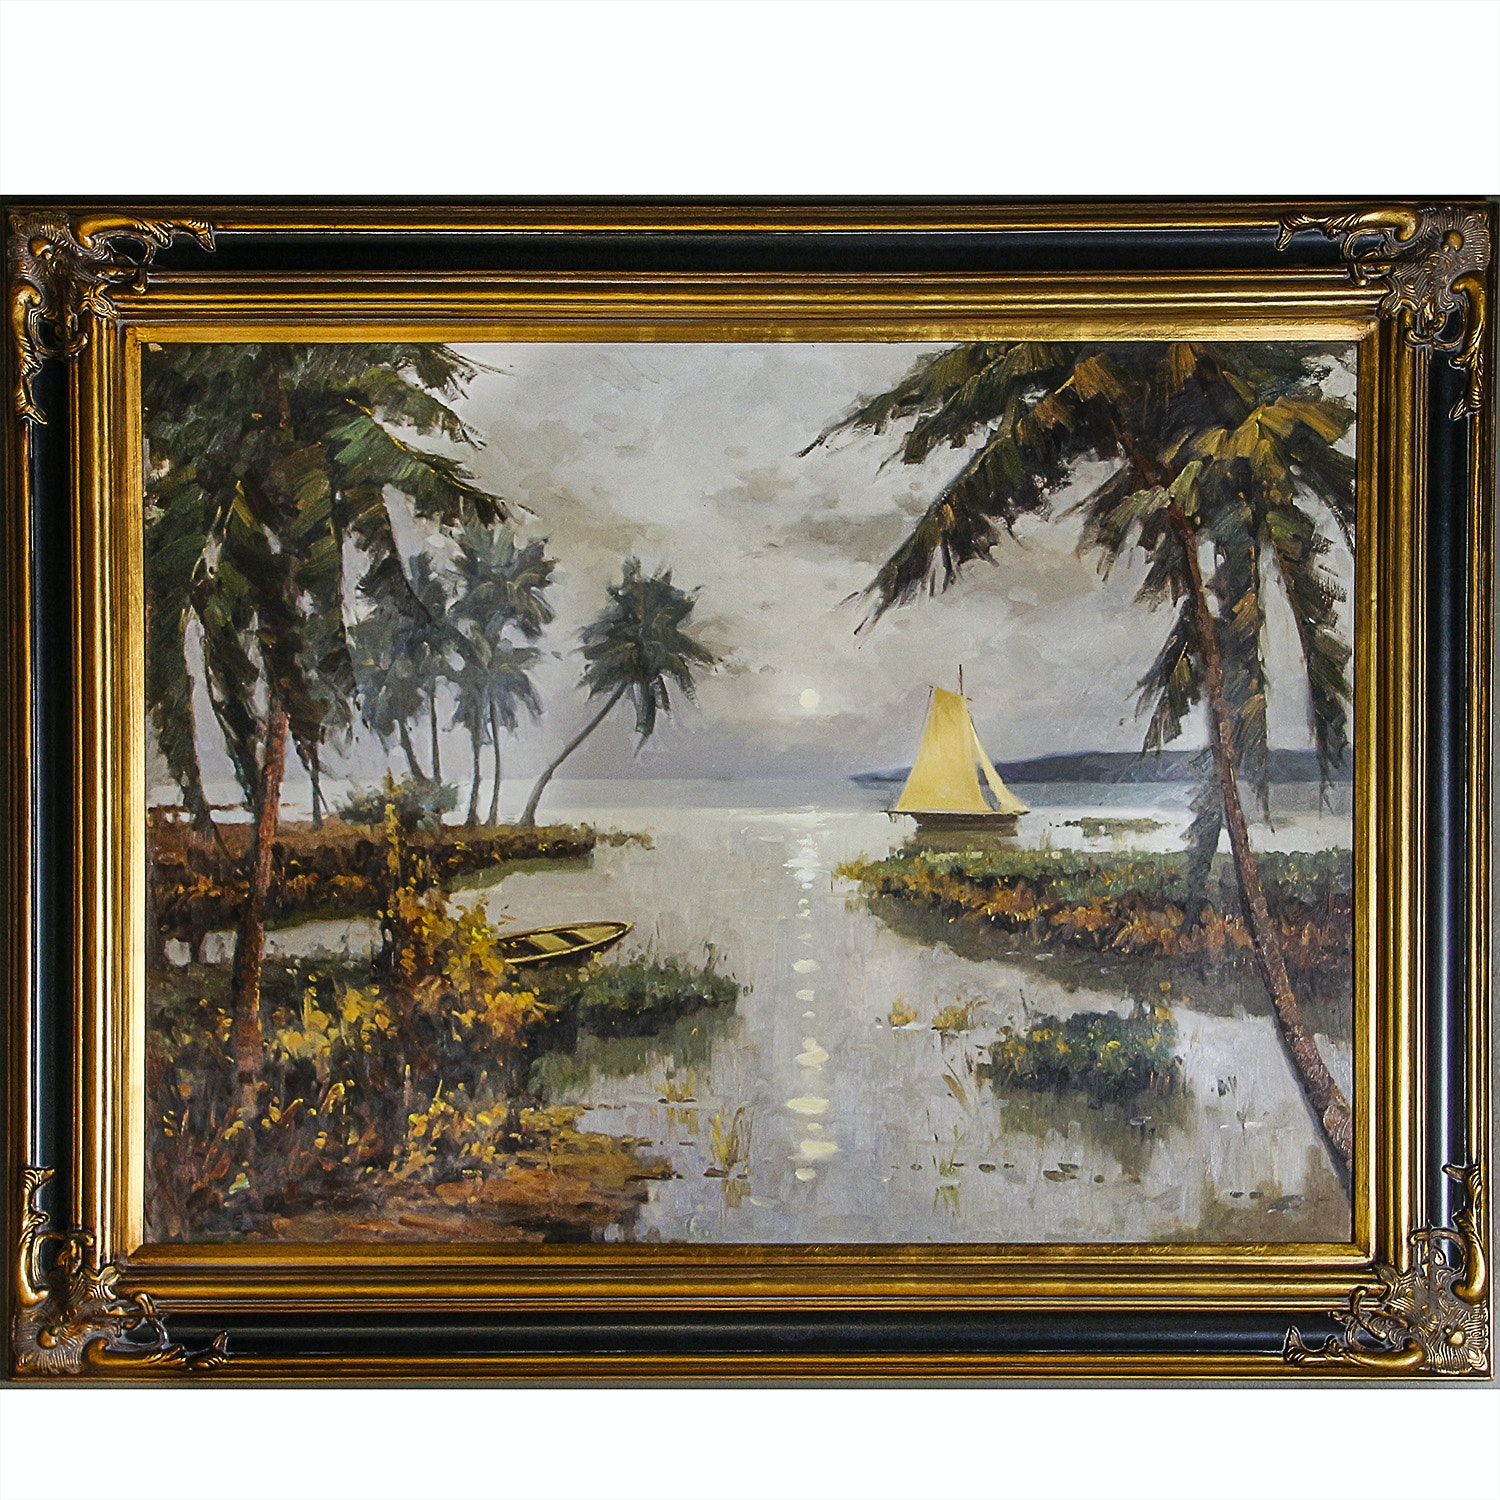 Oil Painting of Sailboat in Tropical Landscape